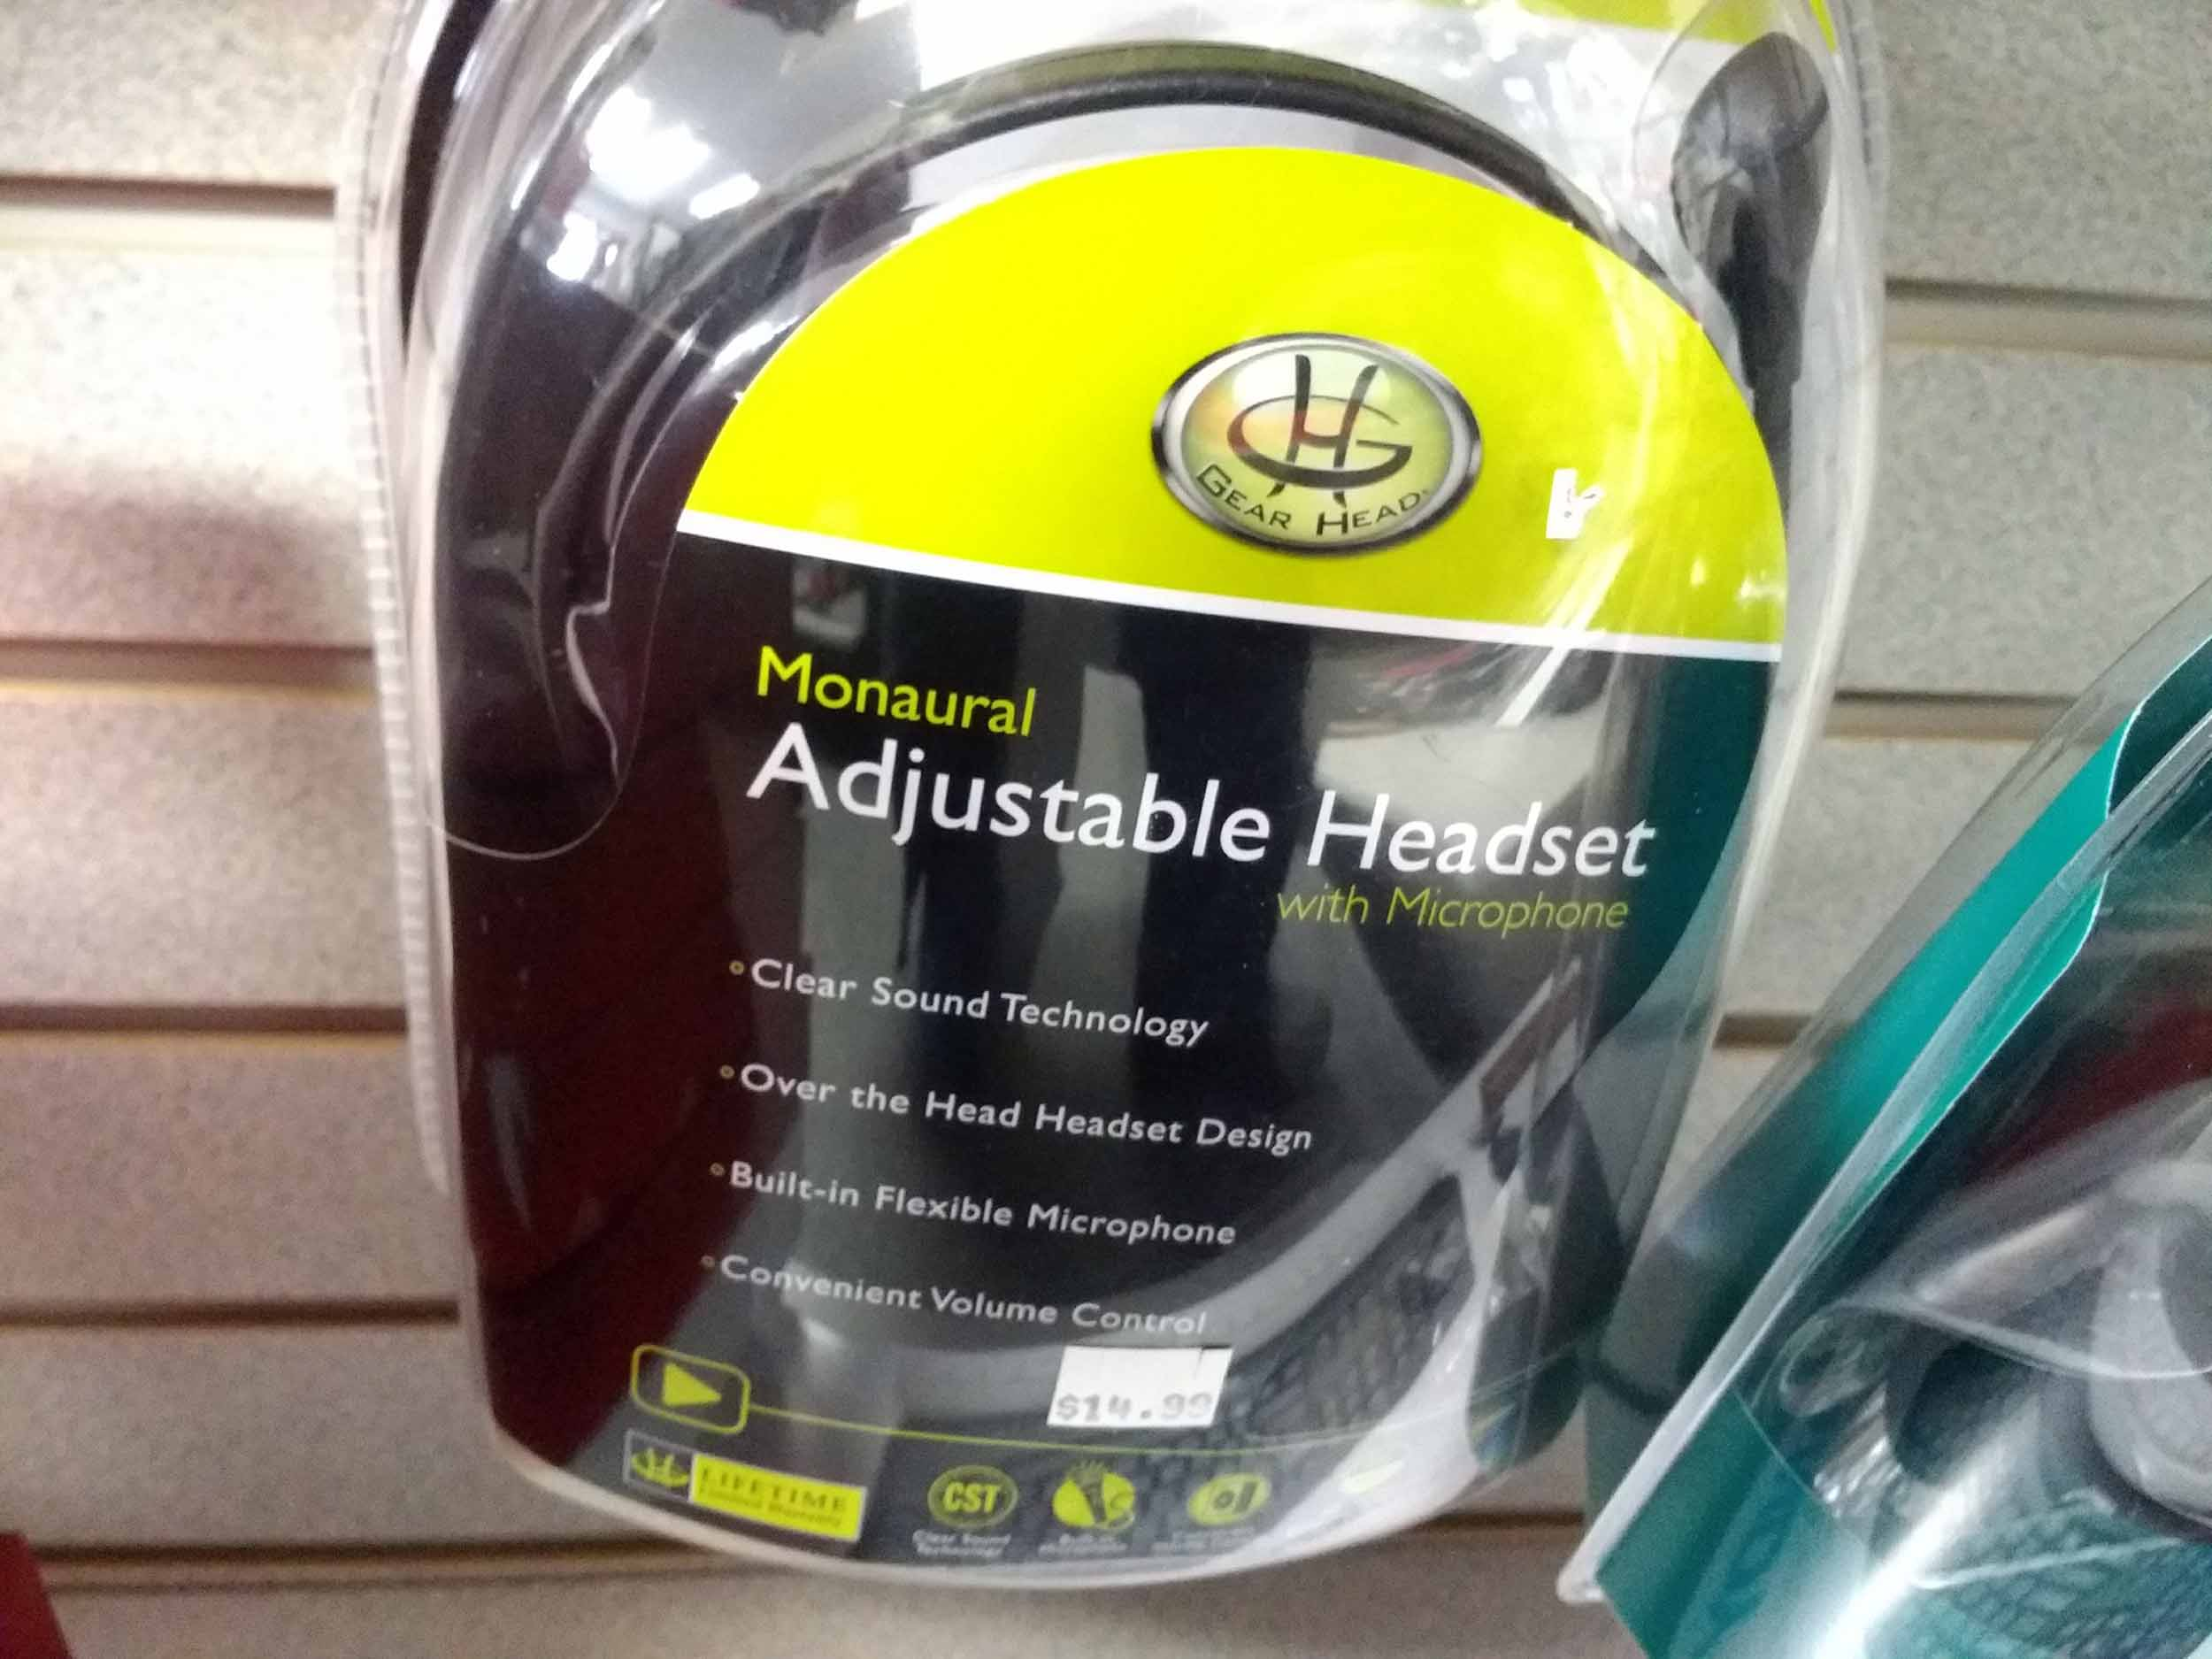 Get a great fit with these adjustable headphones with microphone.